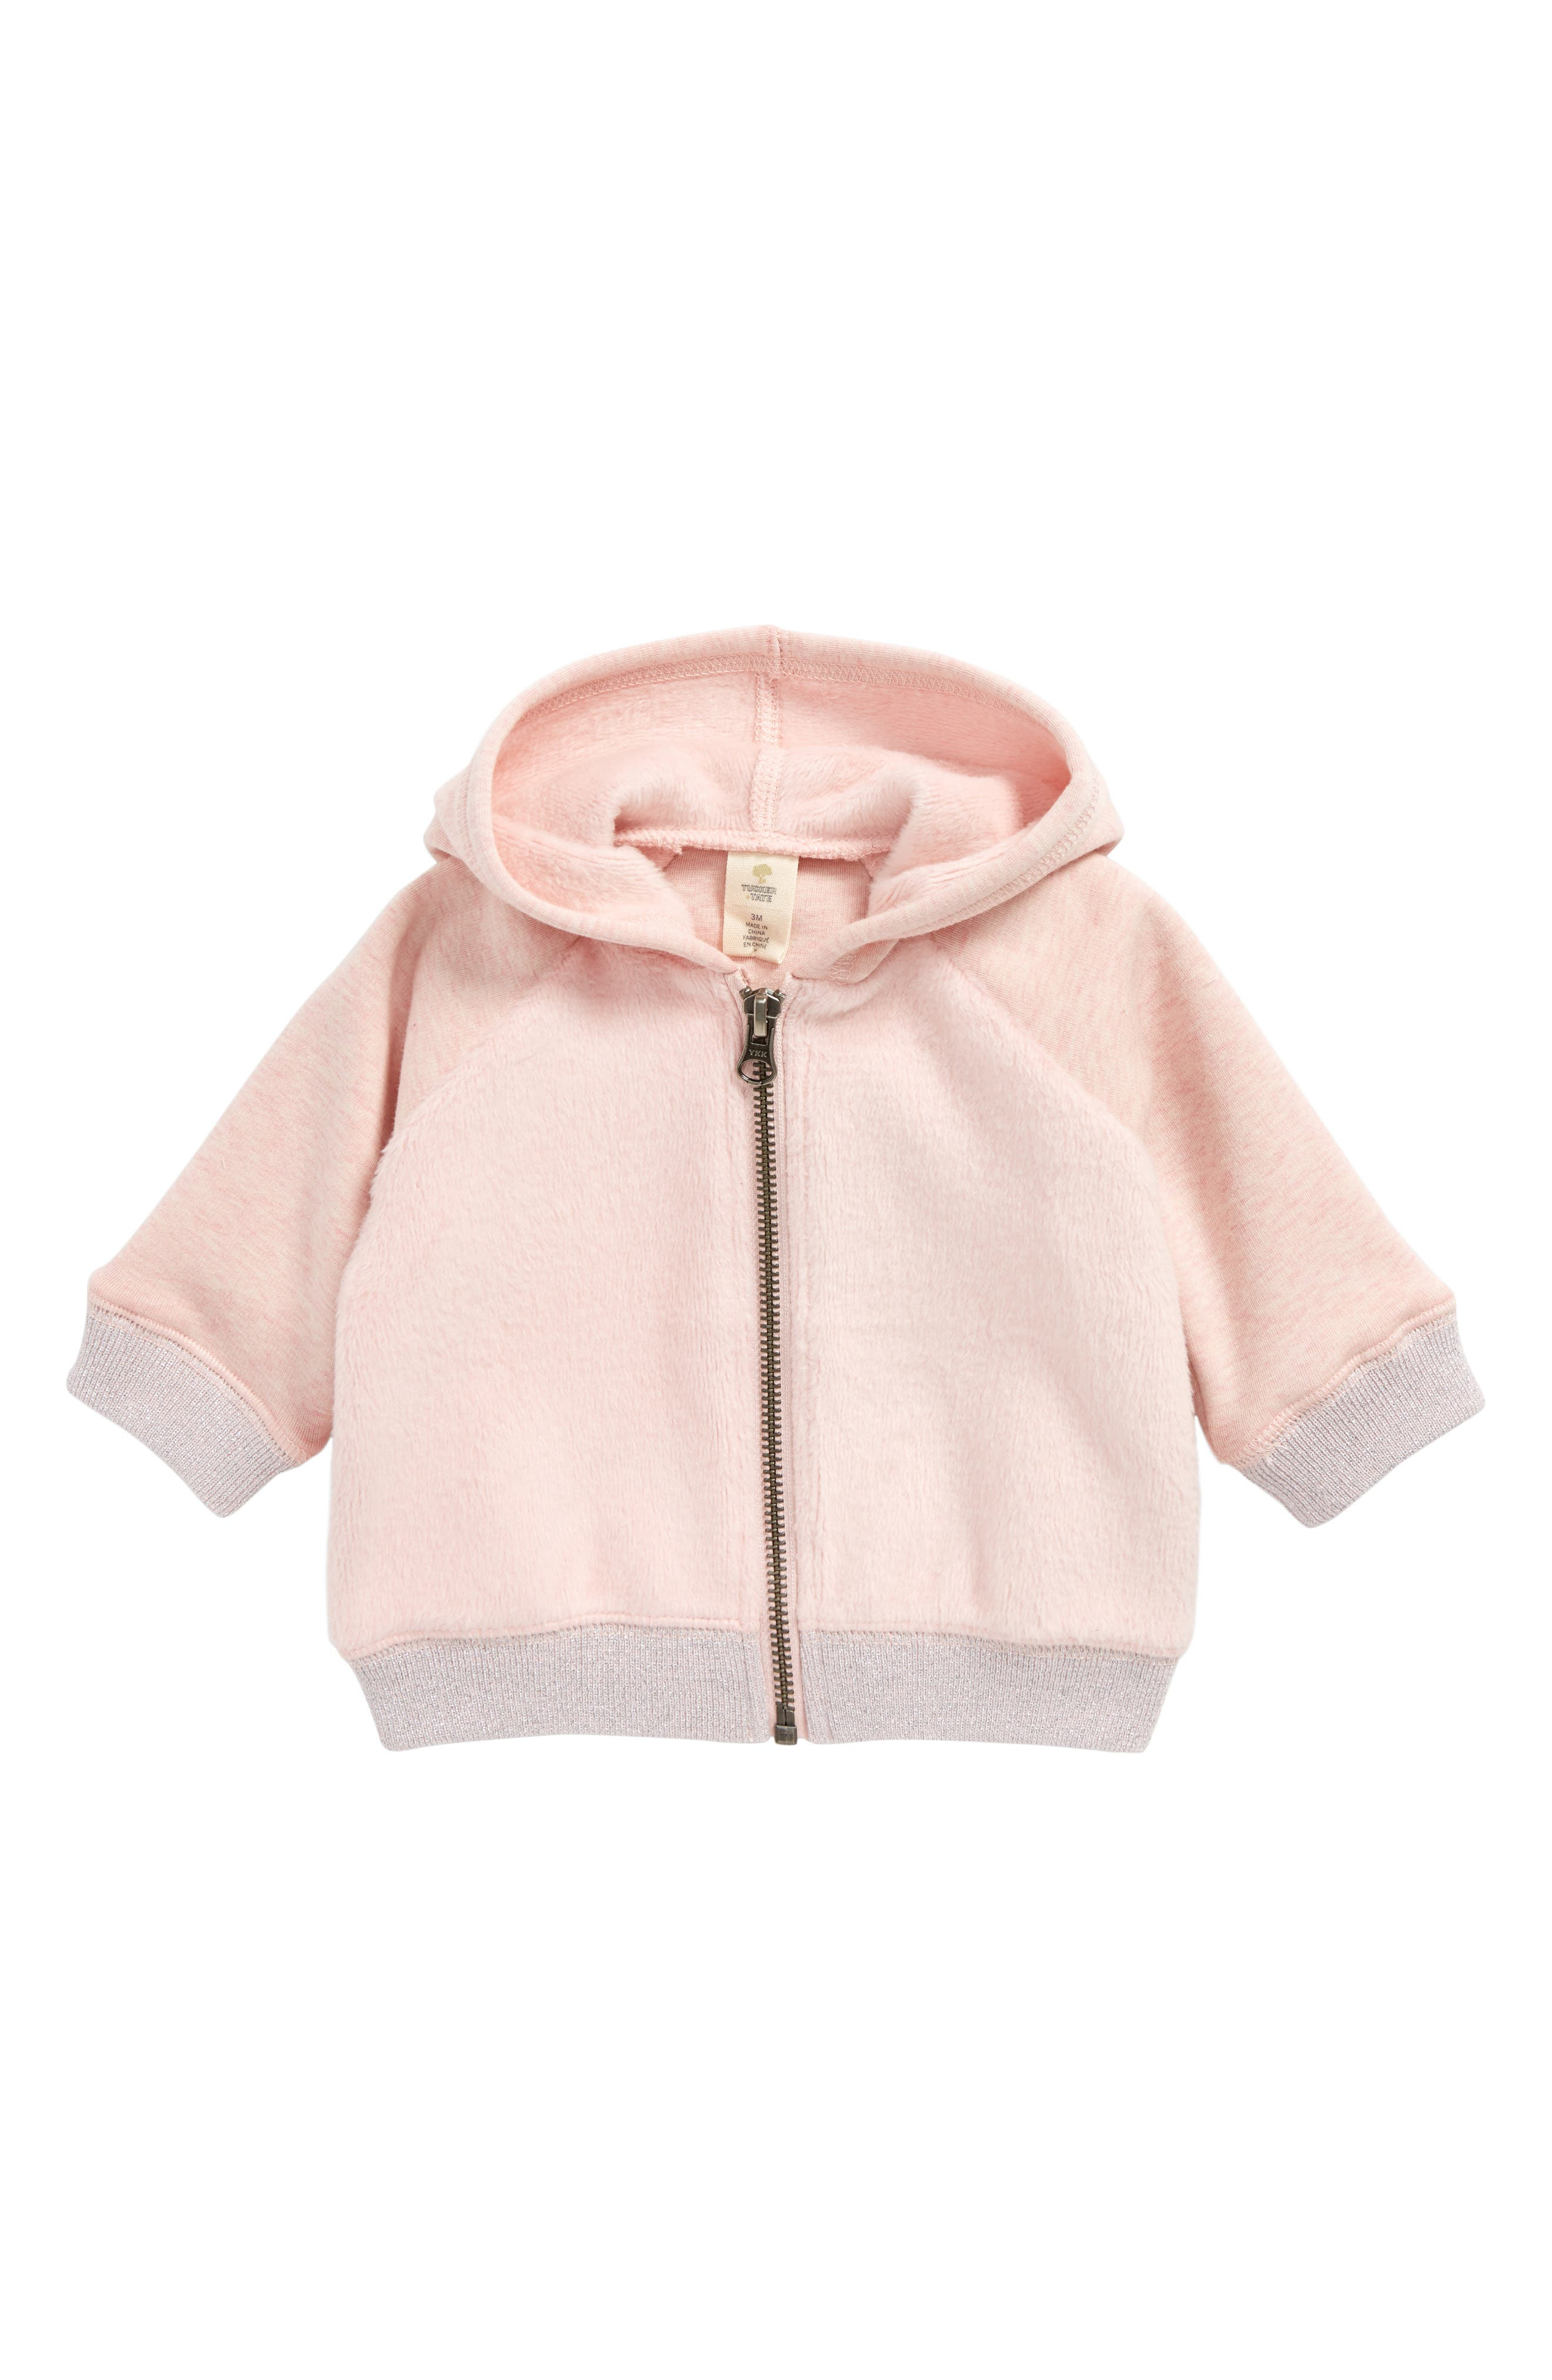 Cozy Zip-Up Hoodie,                             Main thumbnail 1, color,                             Pink Silver